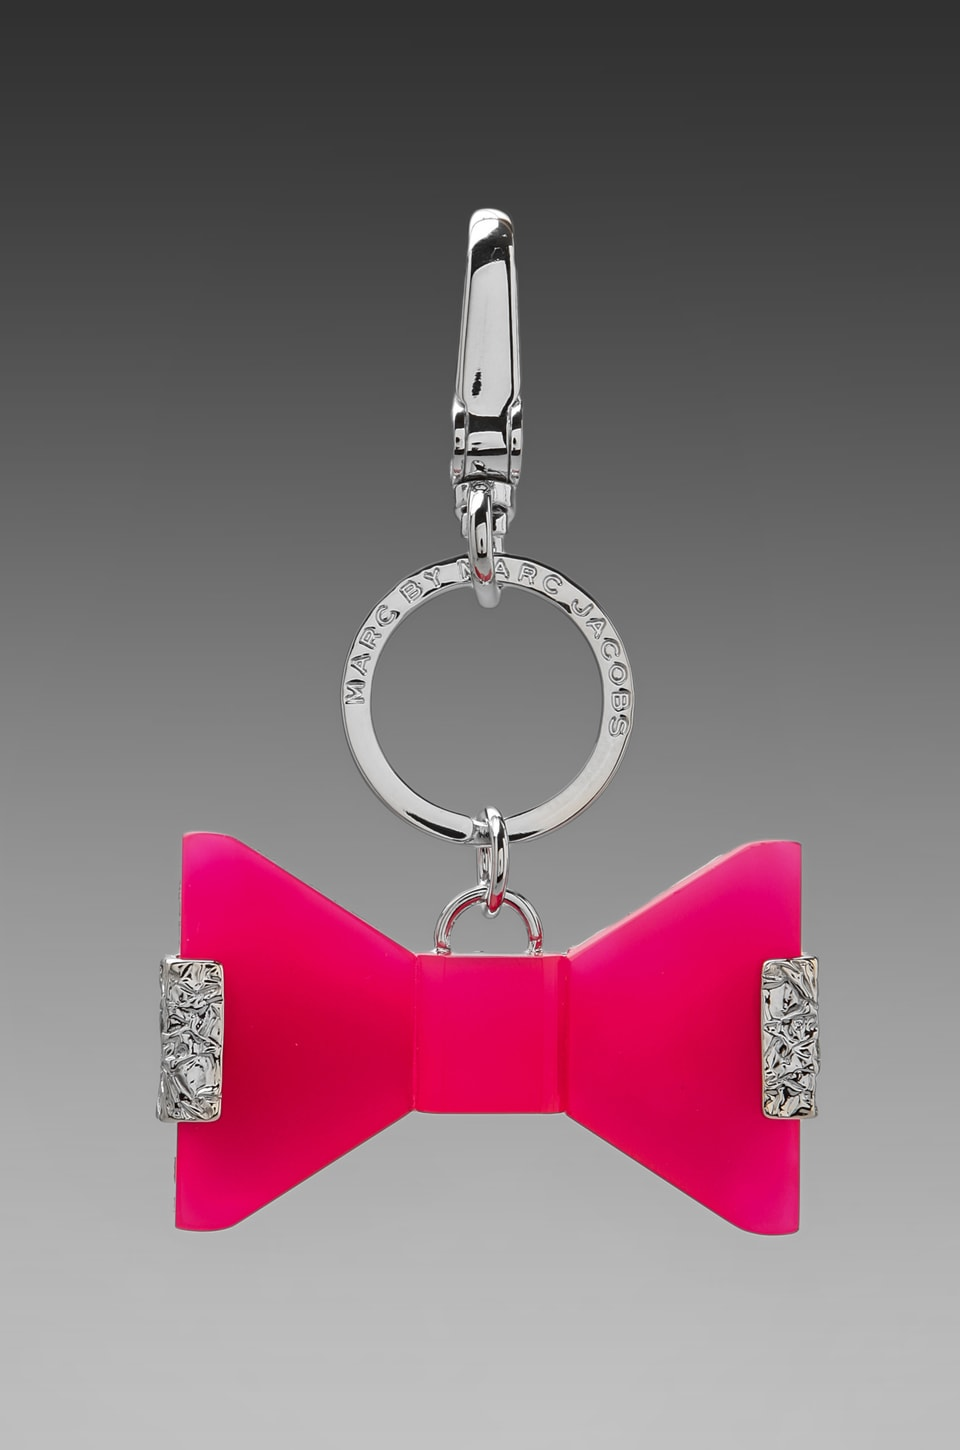 Marc by Marc Jacobs Bow Bag Charm in Knockout Pink